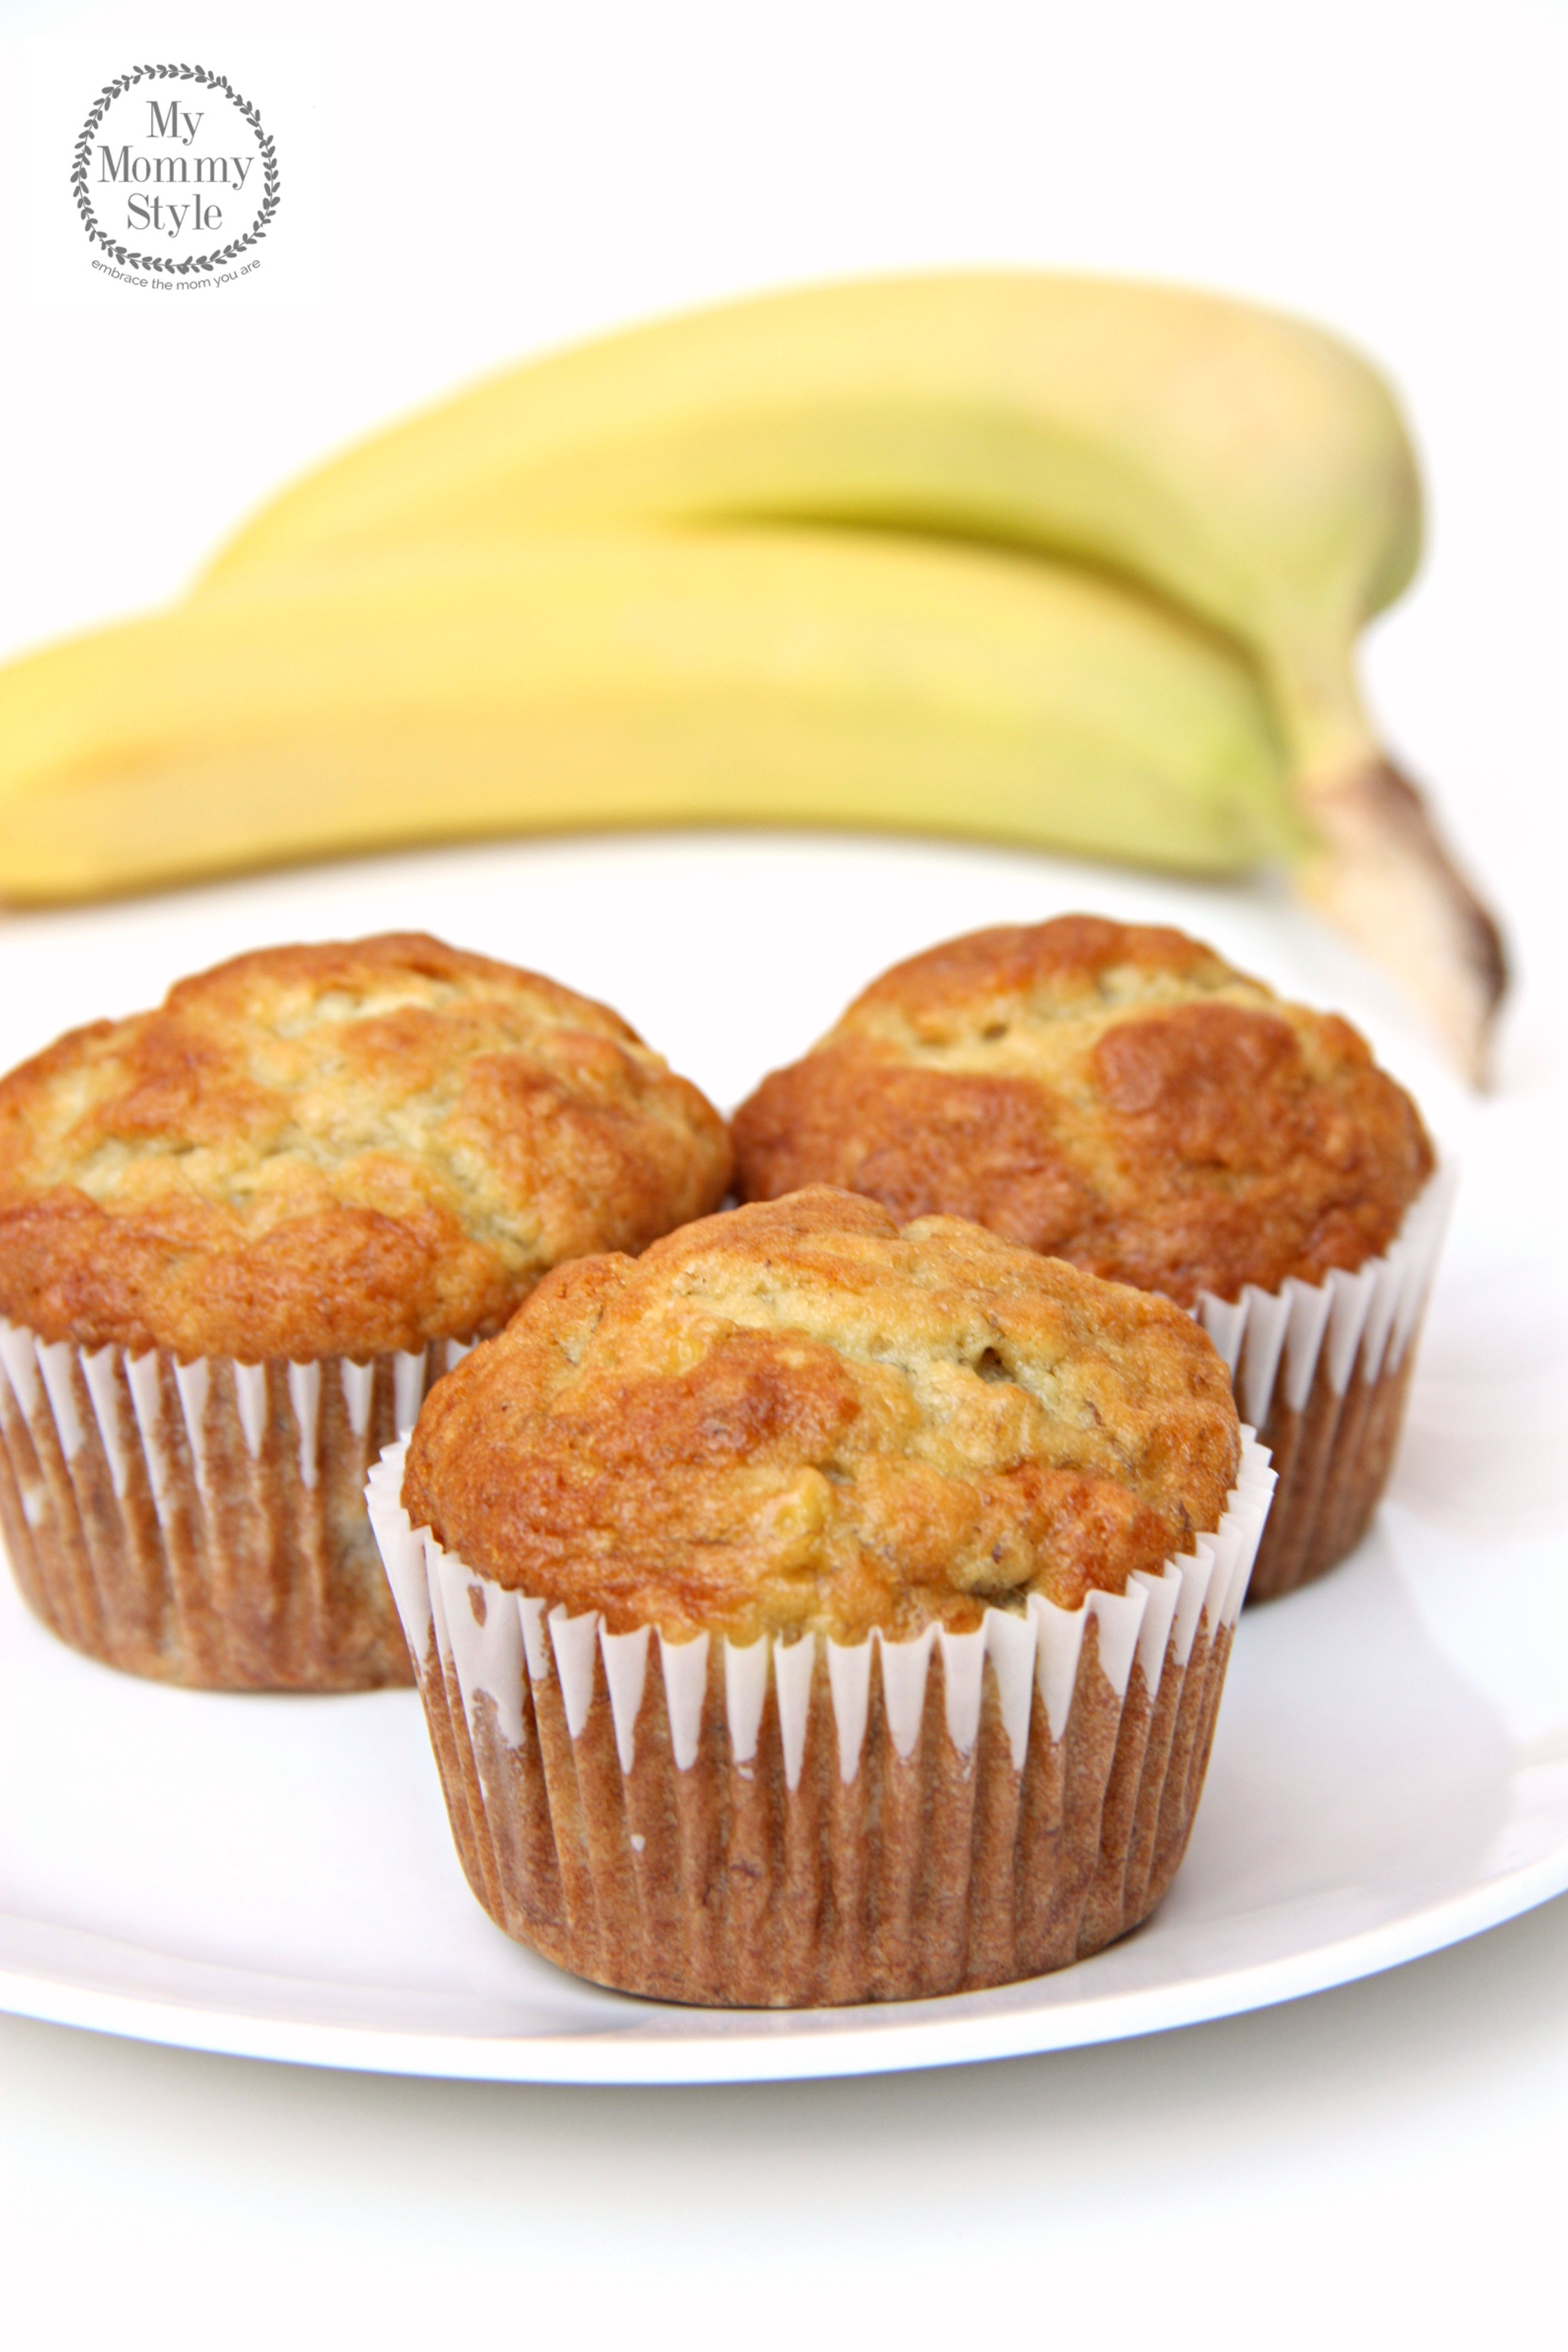 Perfect Banana Muffins {with video} - My Mommy Style